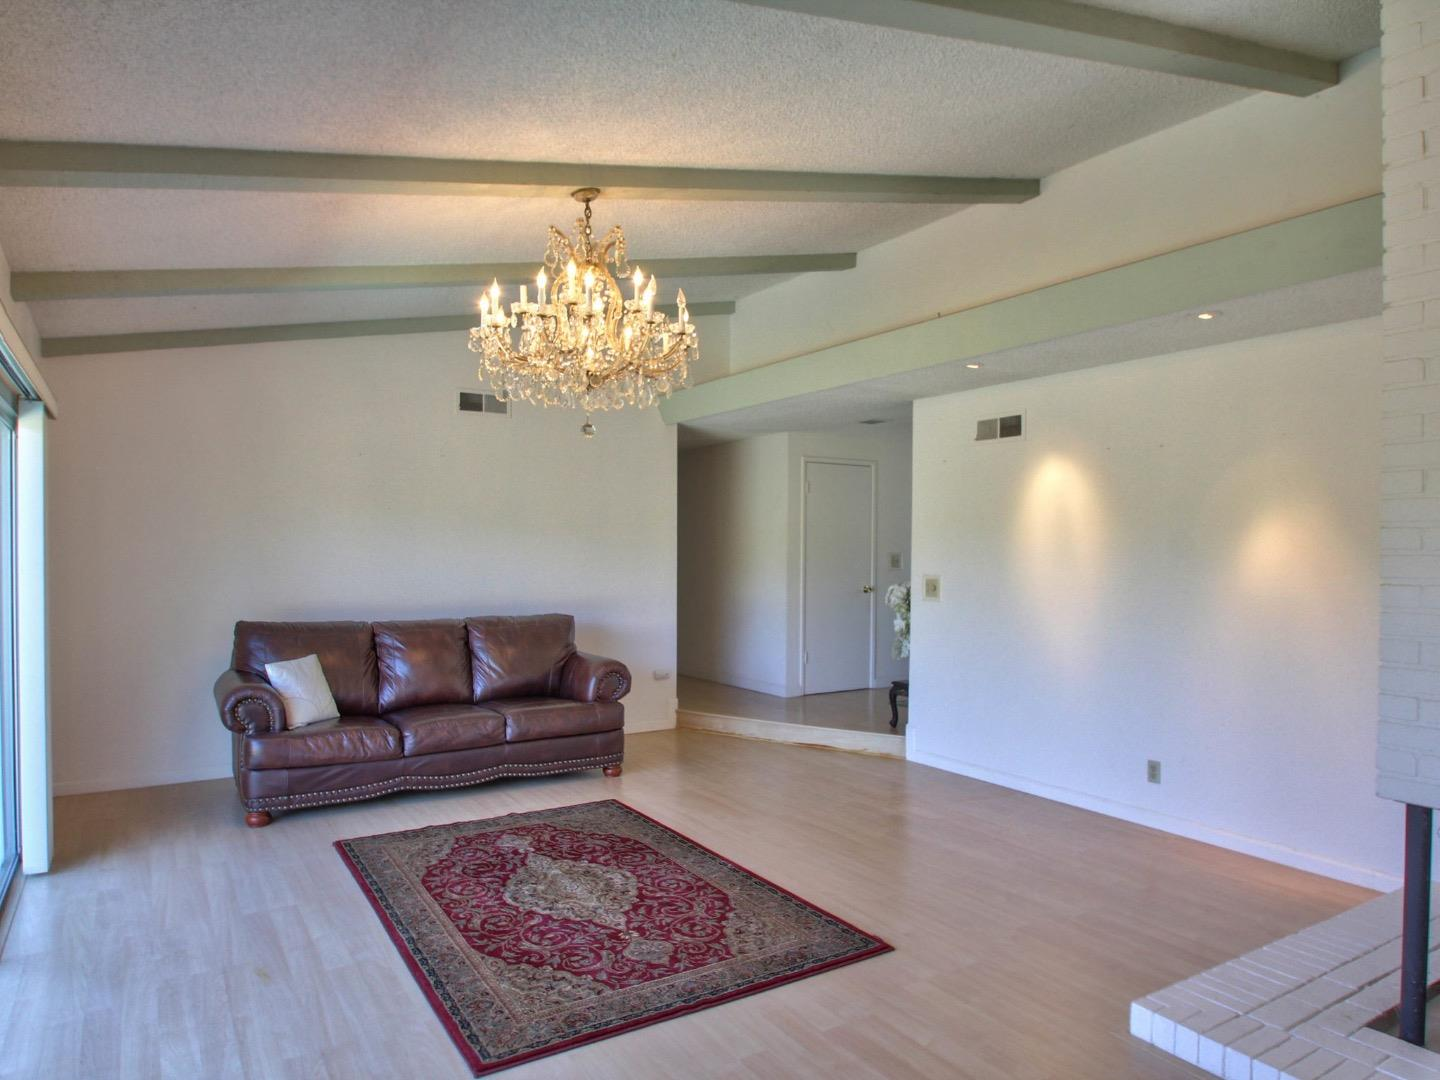 Additional photo for property listing at 22279 Capote Drive  Salinas, カリフォルニア 93908 アメリカ合衆国